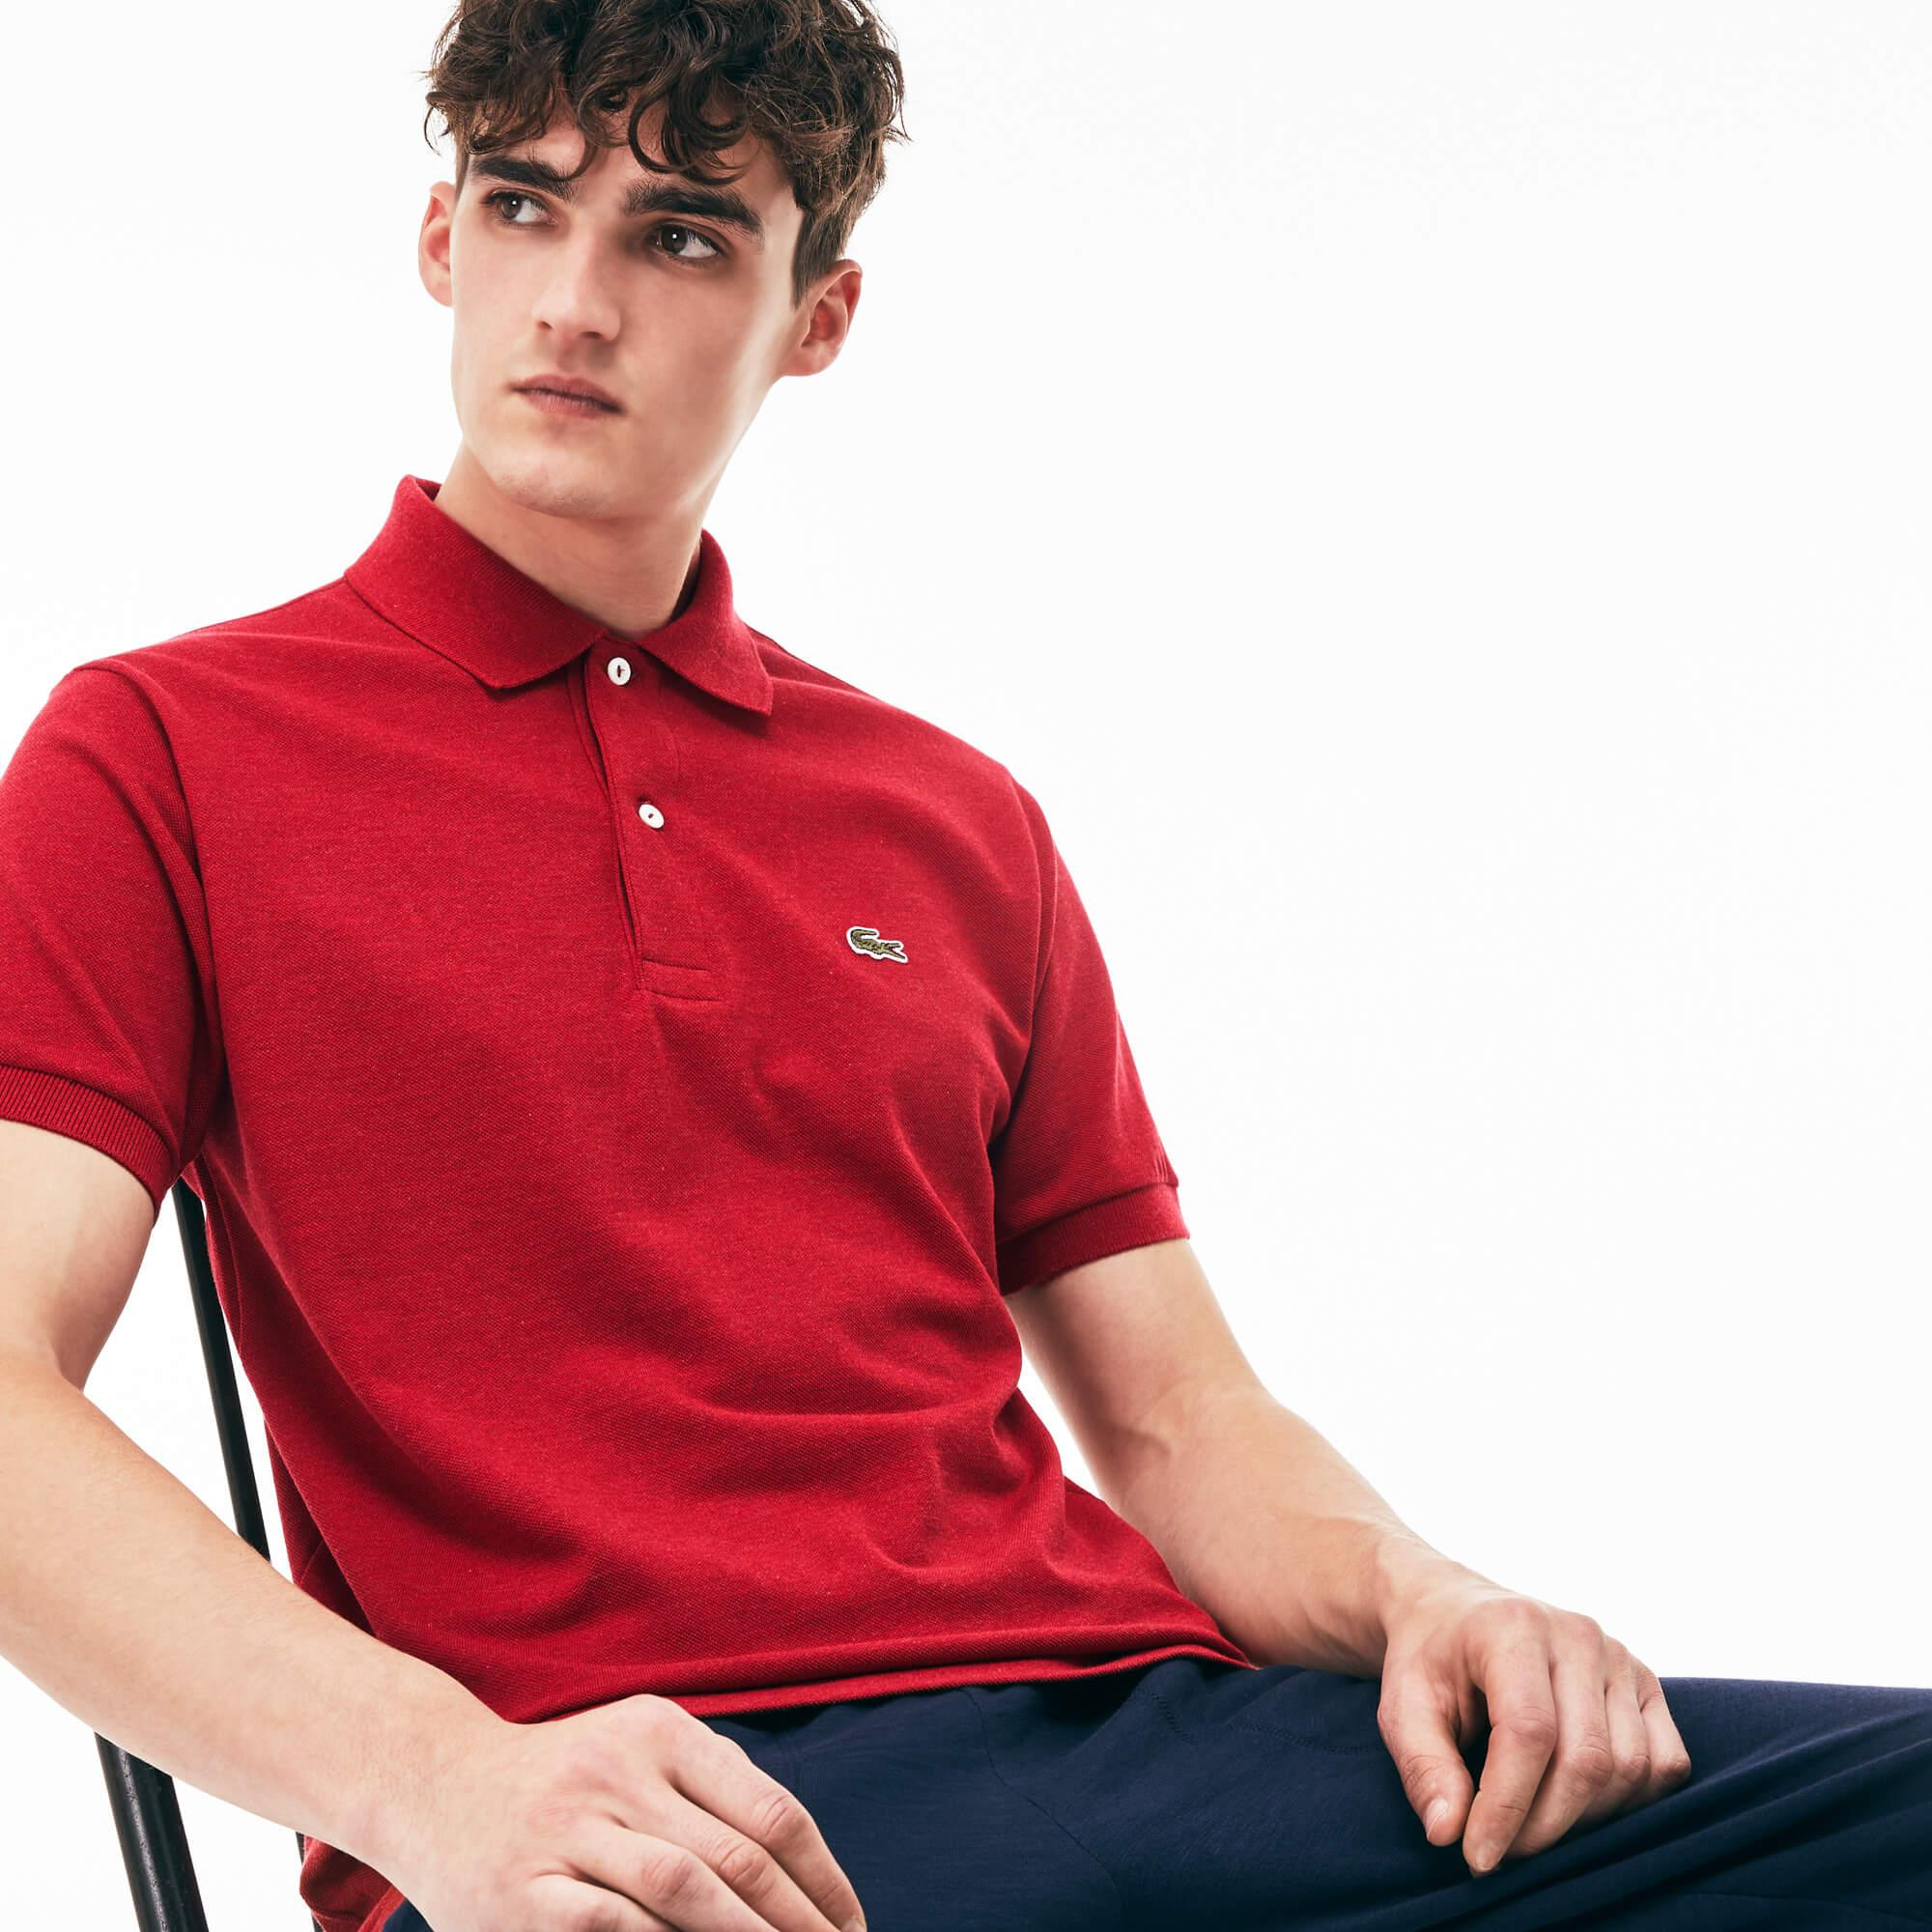 Lacoste Marl Lacoste L.12.12 Polo Shirt